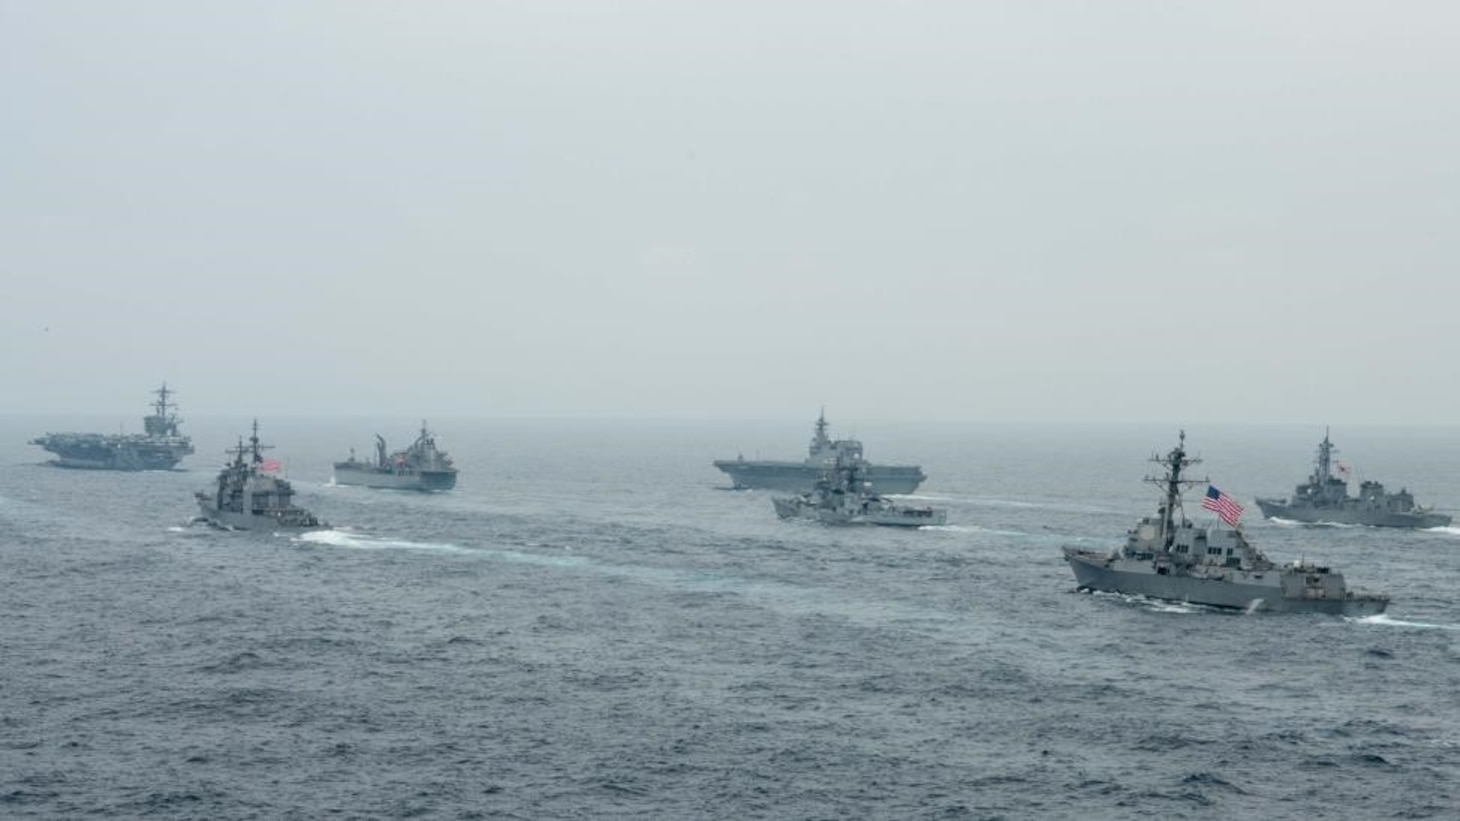 BAY OF BENGAL (Oct. 12, 2021)  U.S. Navy Nimitz-class aircraft carrier USS Carl Vinson (CVN 70), U.S. Navy Ticonderoga-class guided-missile cruiser USS Lake Champlain (CG 57), Royal Australian Navy fleet replenishment vessel HMAS Sirius (O 266), Japan Maritime Self-Defense Force (JMSDF) Izumo-class helicopter destroyer JS Kaga (DDH 184), Royal Indian Navy Rajput-class destroyer INS Ranvijay (D55), U.S. Navy Arleigh Burke-class guided-missile destroyer USS Stockdale (DDG 106) and JMSDF Murasame-class destroyer JS Murasame (DD 101) transit the Bay of Bengal as part of MALABAR 2021, Oct. 12, 2021. MALABAR 2021 is a maritime exercise designed to improve integration, address common maritime security priorities and concerns, enhance interoperability and communication, and strengthen enduring relationships between the Royal Australian Navy, Royal Indian Navy, JMSDF, and U.S. maritime forces. (U.S. Navy photo by Mass Communication Specialist 2nd Class Russell Lindsey)